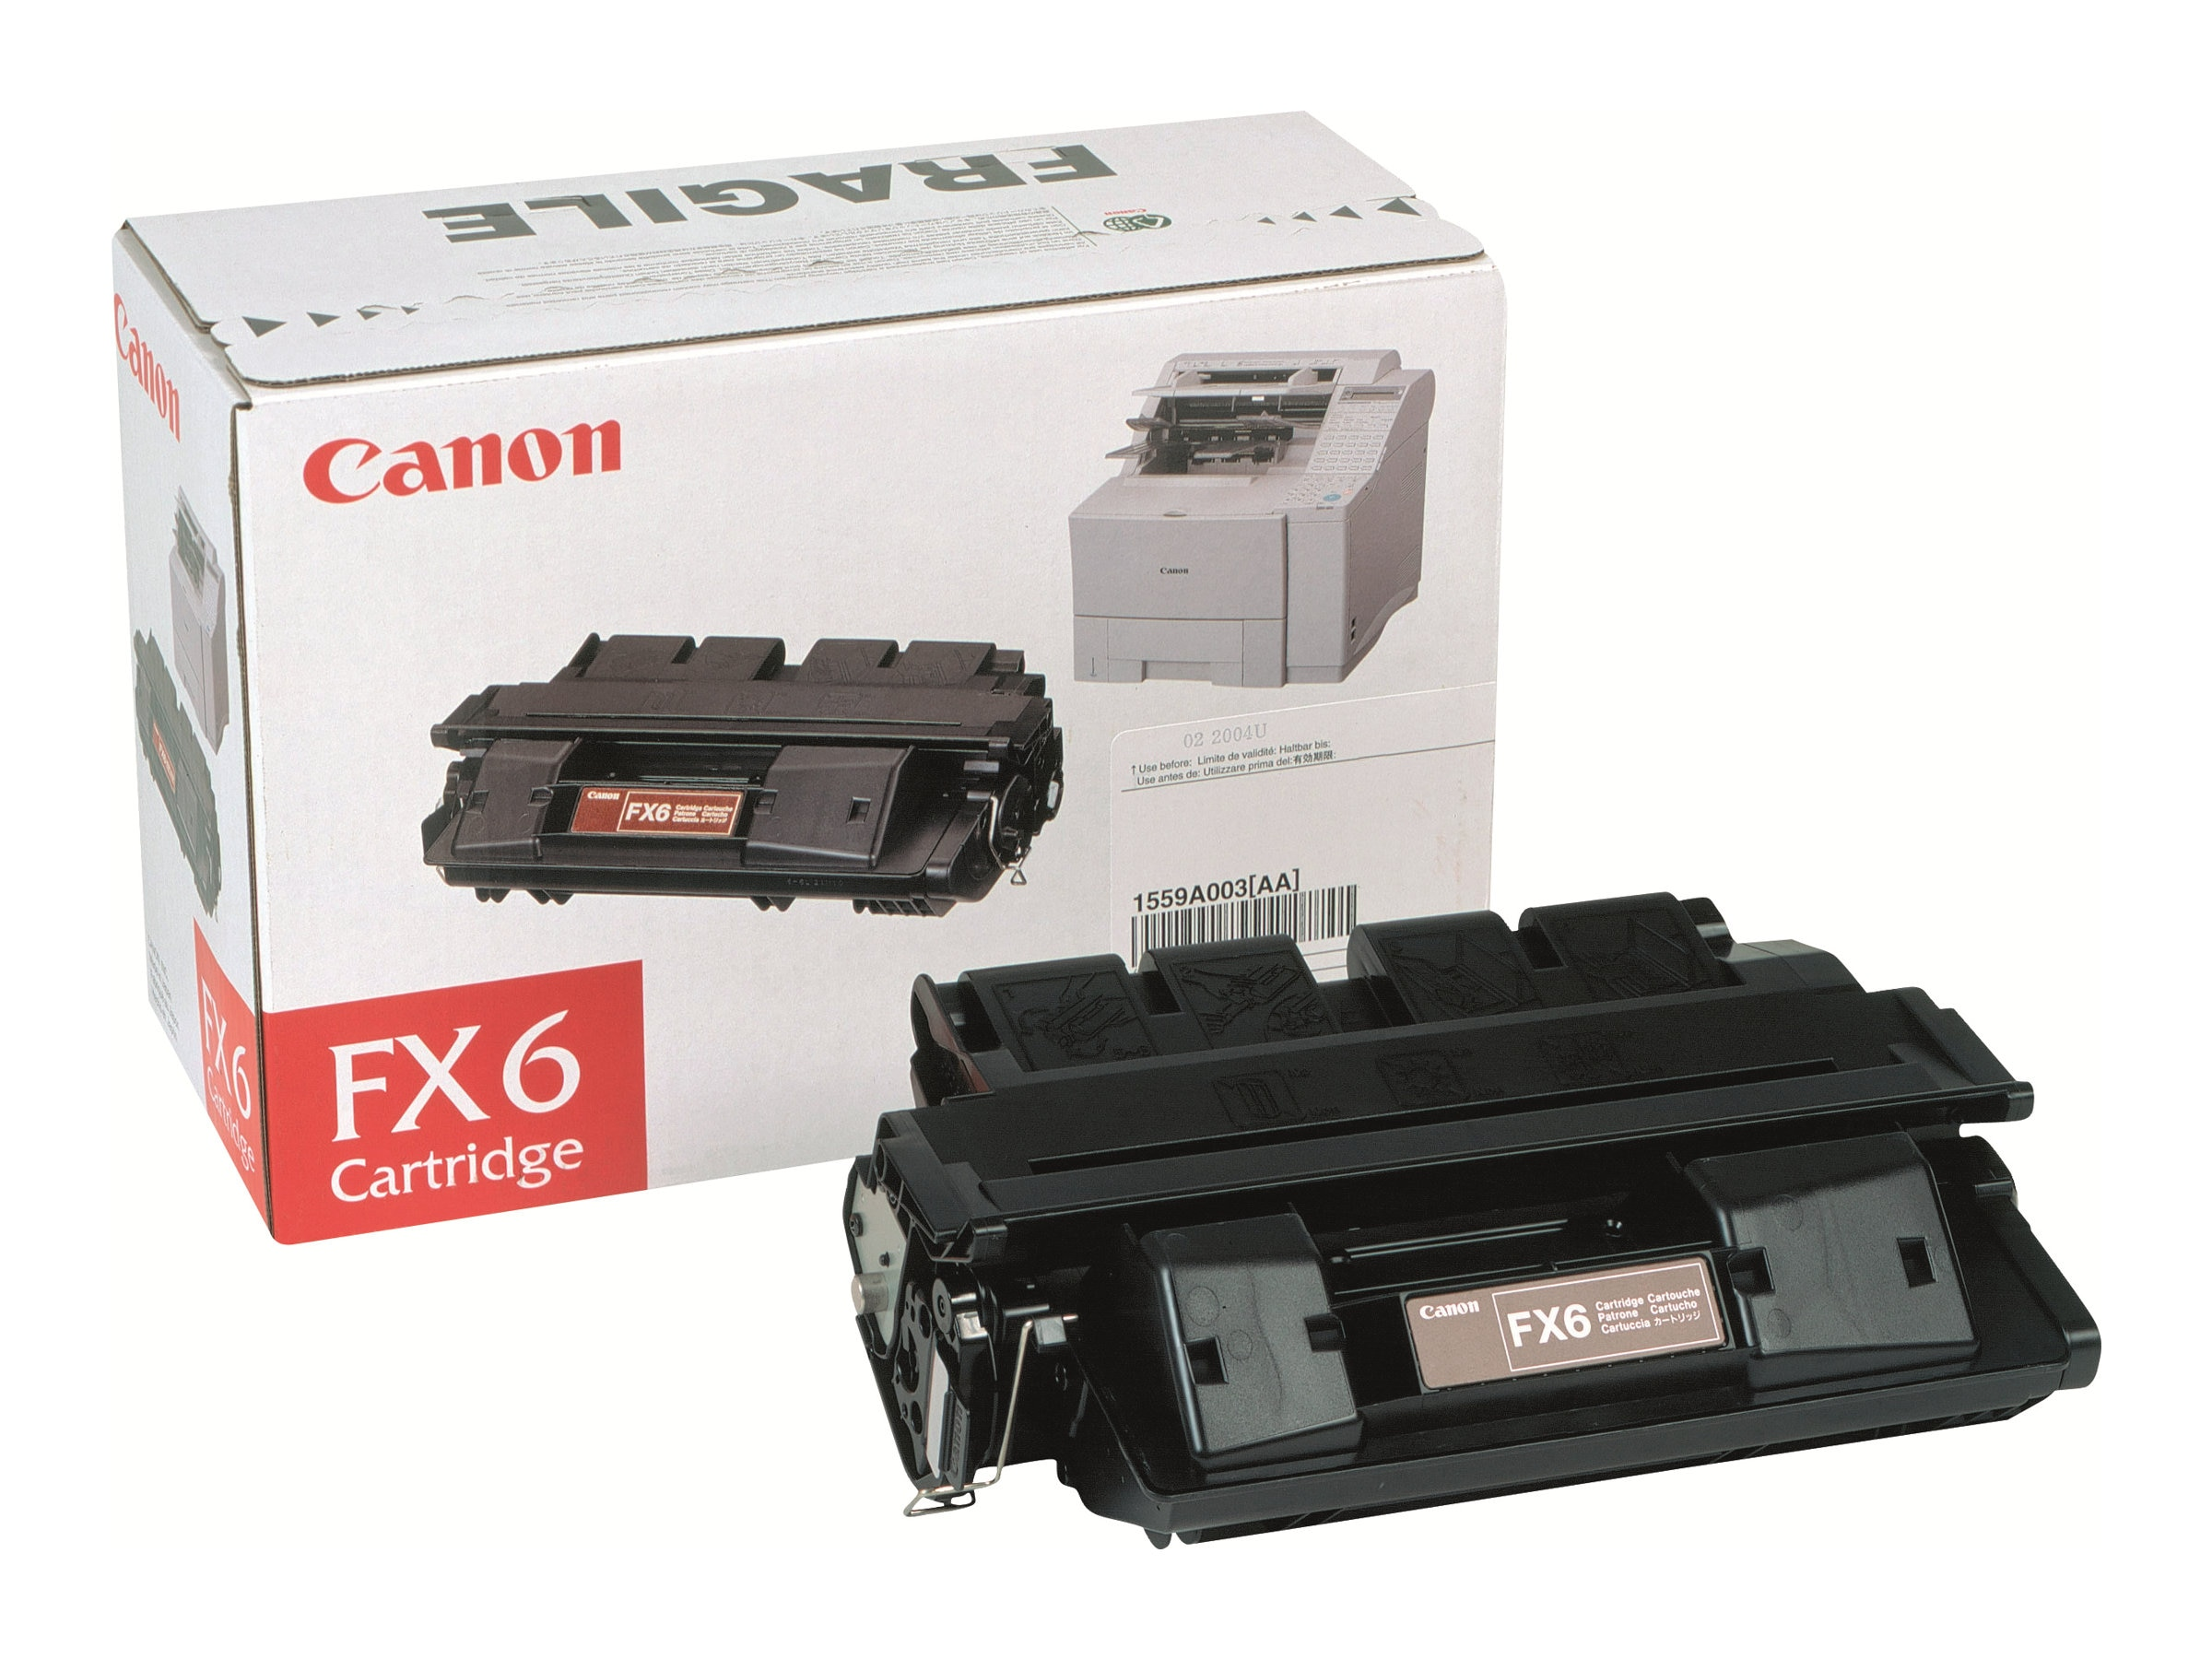 Canon Black FX-6 Toner Cartridge for Laser Class 3170 3175 Series Fax Machines, 1559A002